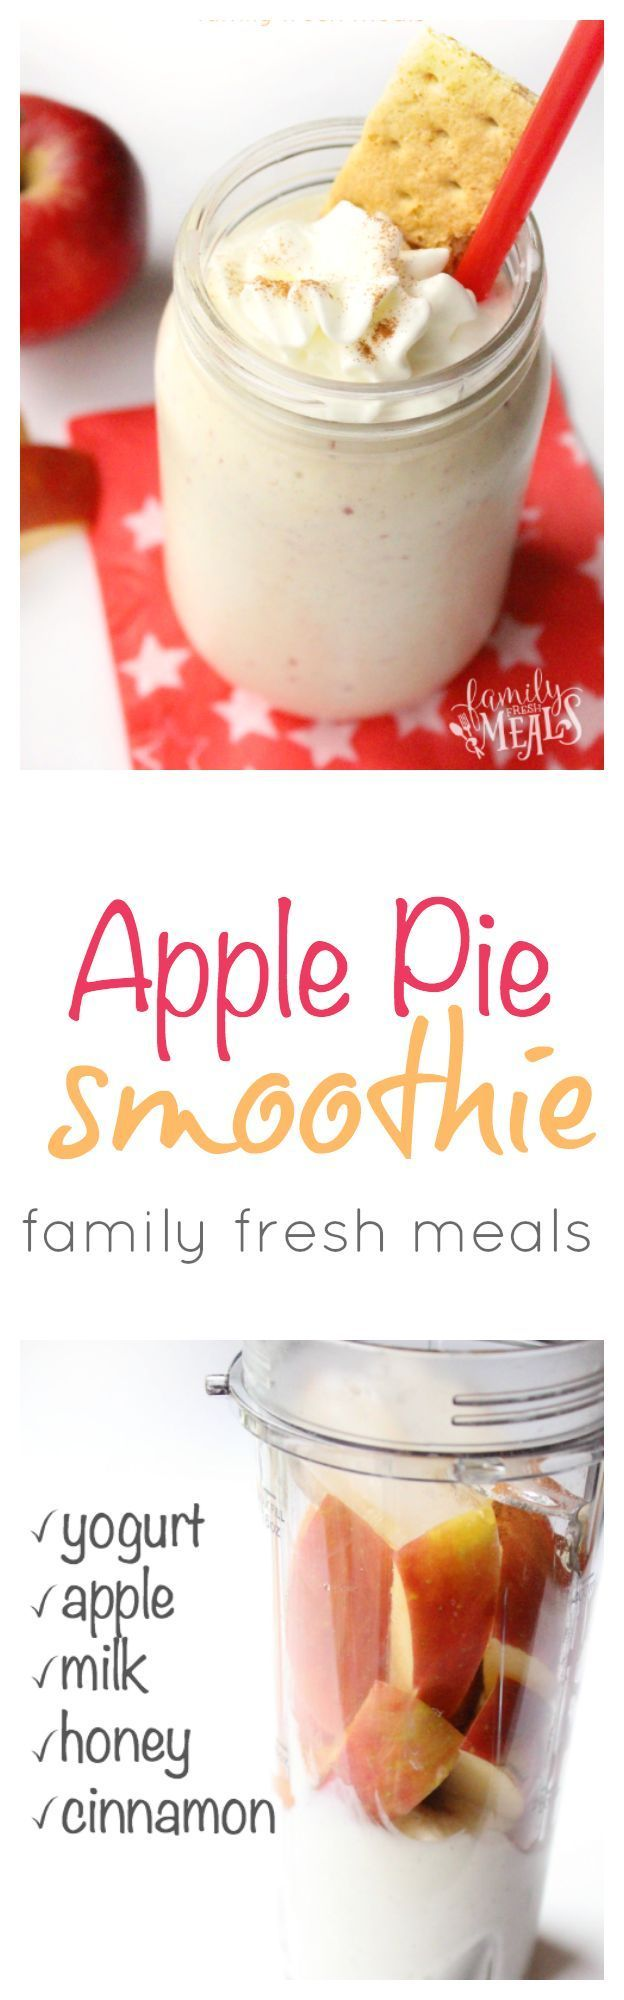 Healthy Apple Pie Smoothie - A great breakfast or snack! #familyfreshmeals  Crystal Munegatto